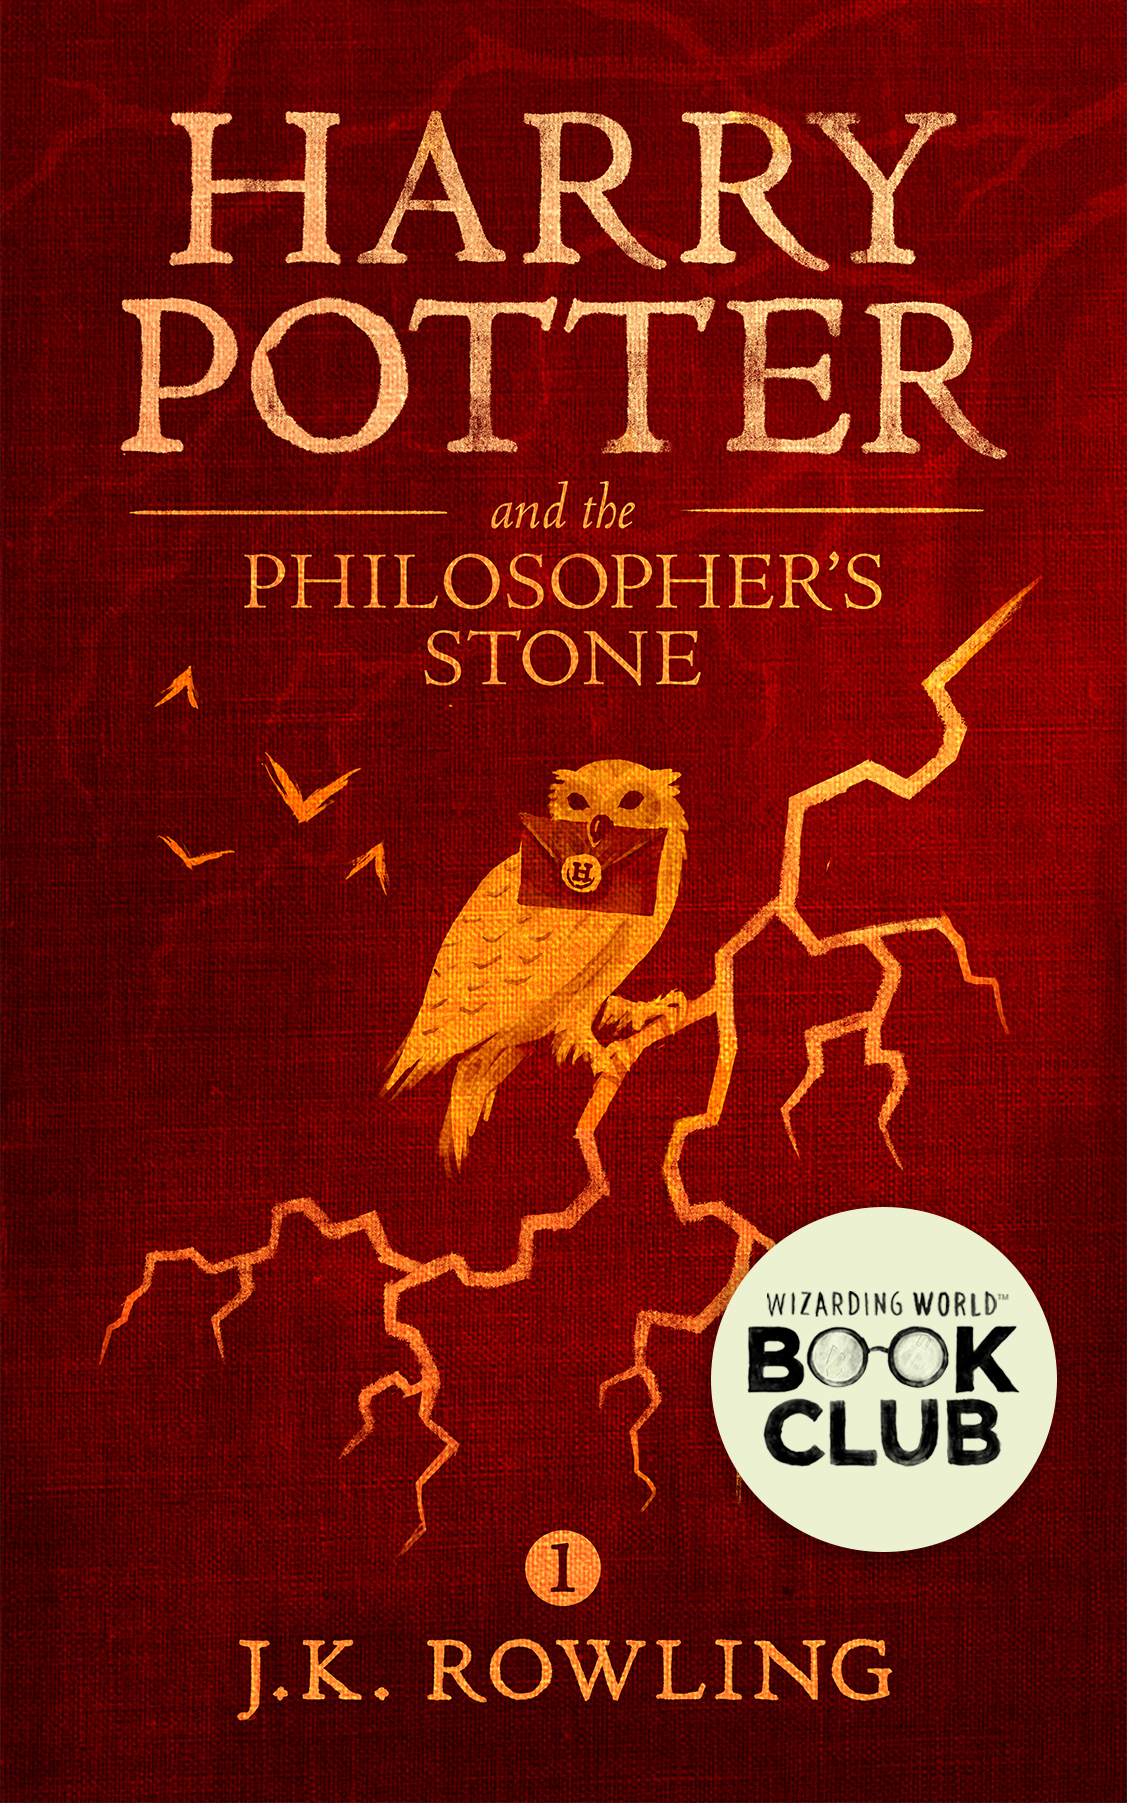 Harry Potter and the Philosopher's Stone |